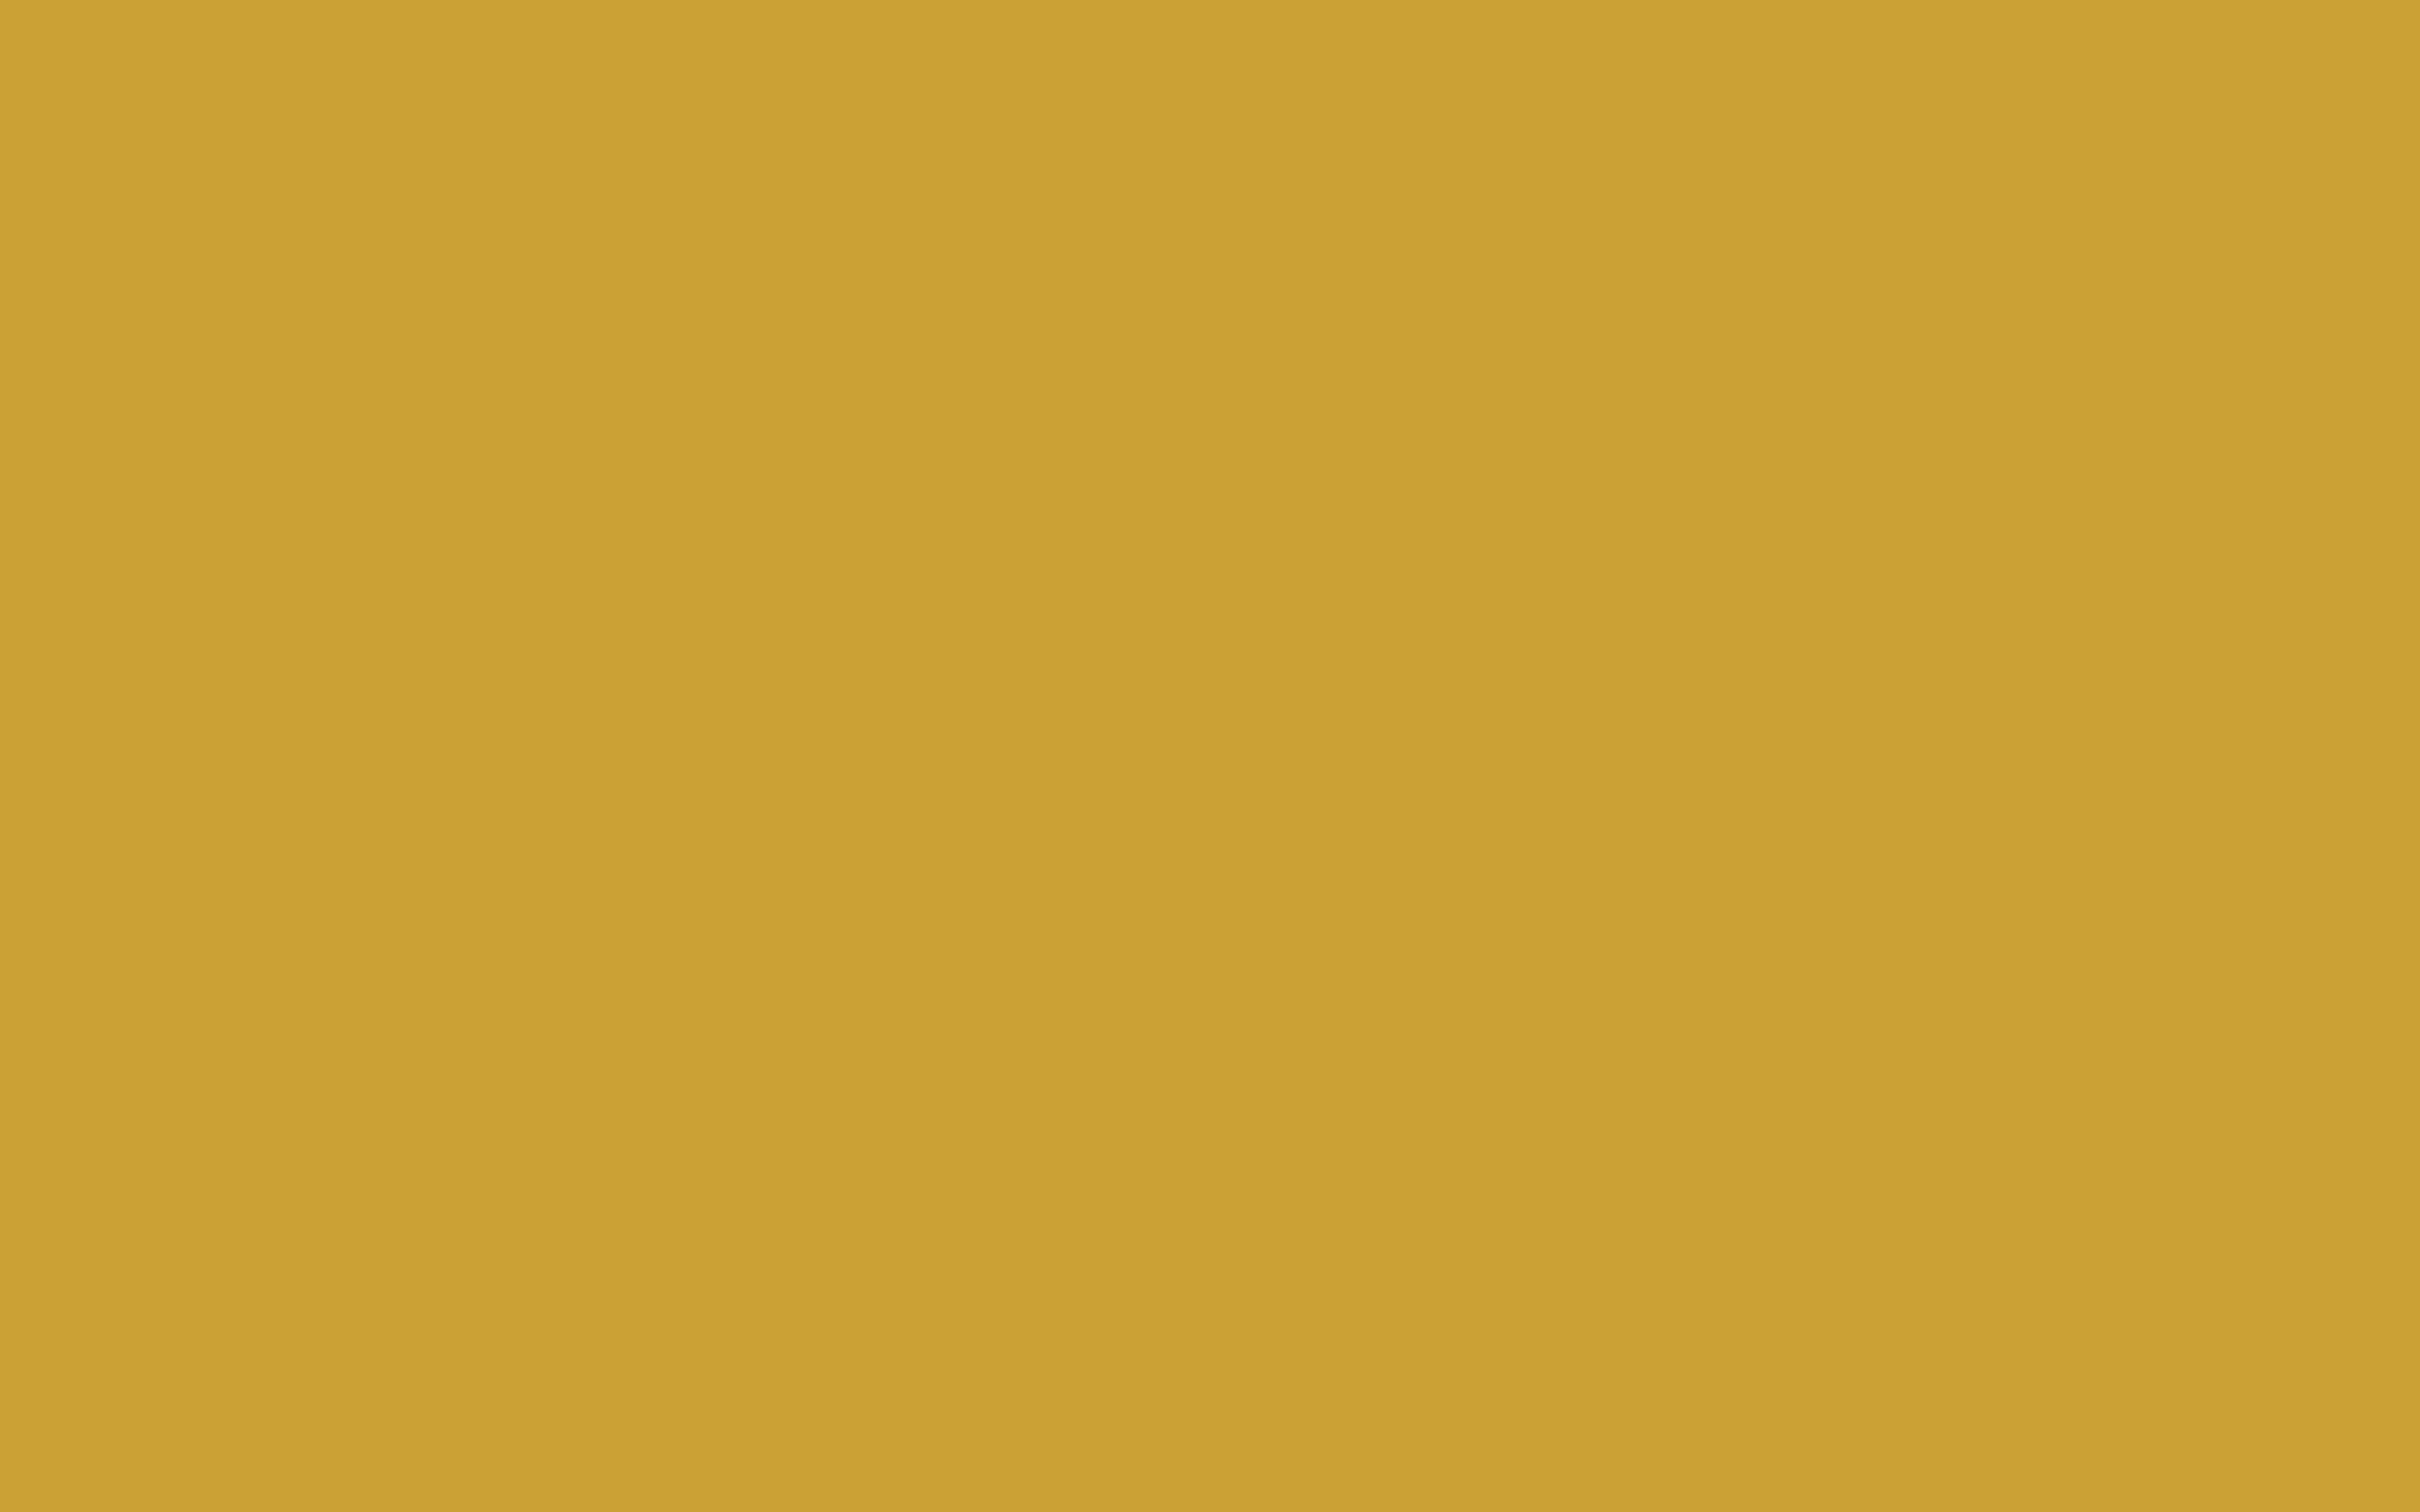 2880x1800 Satin Sheen Gold Solid Color Background